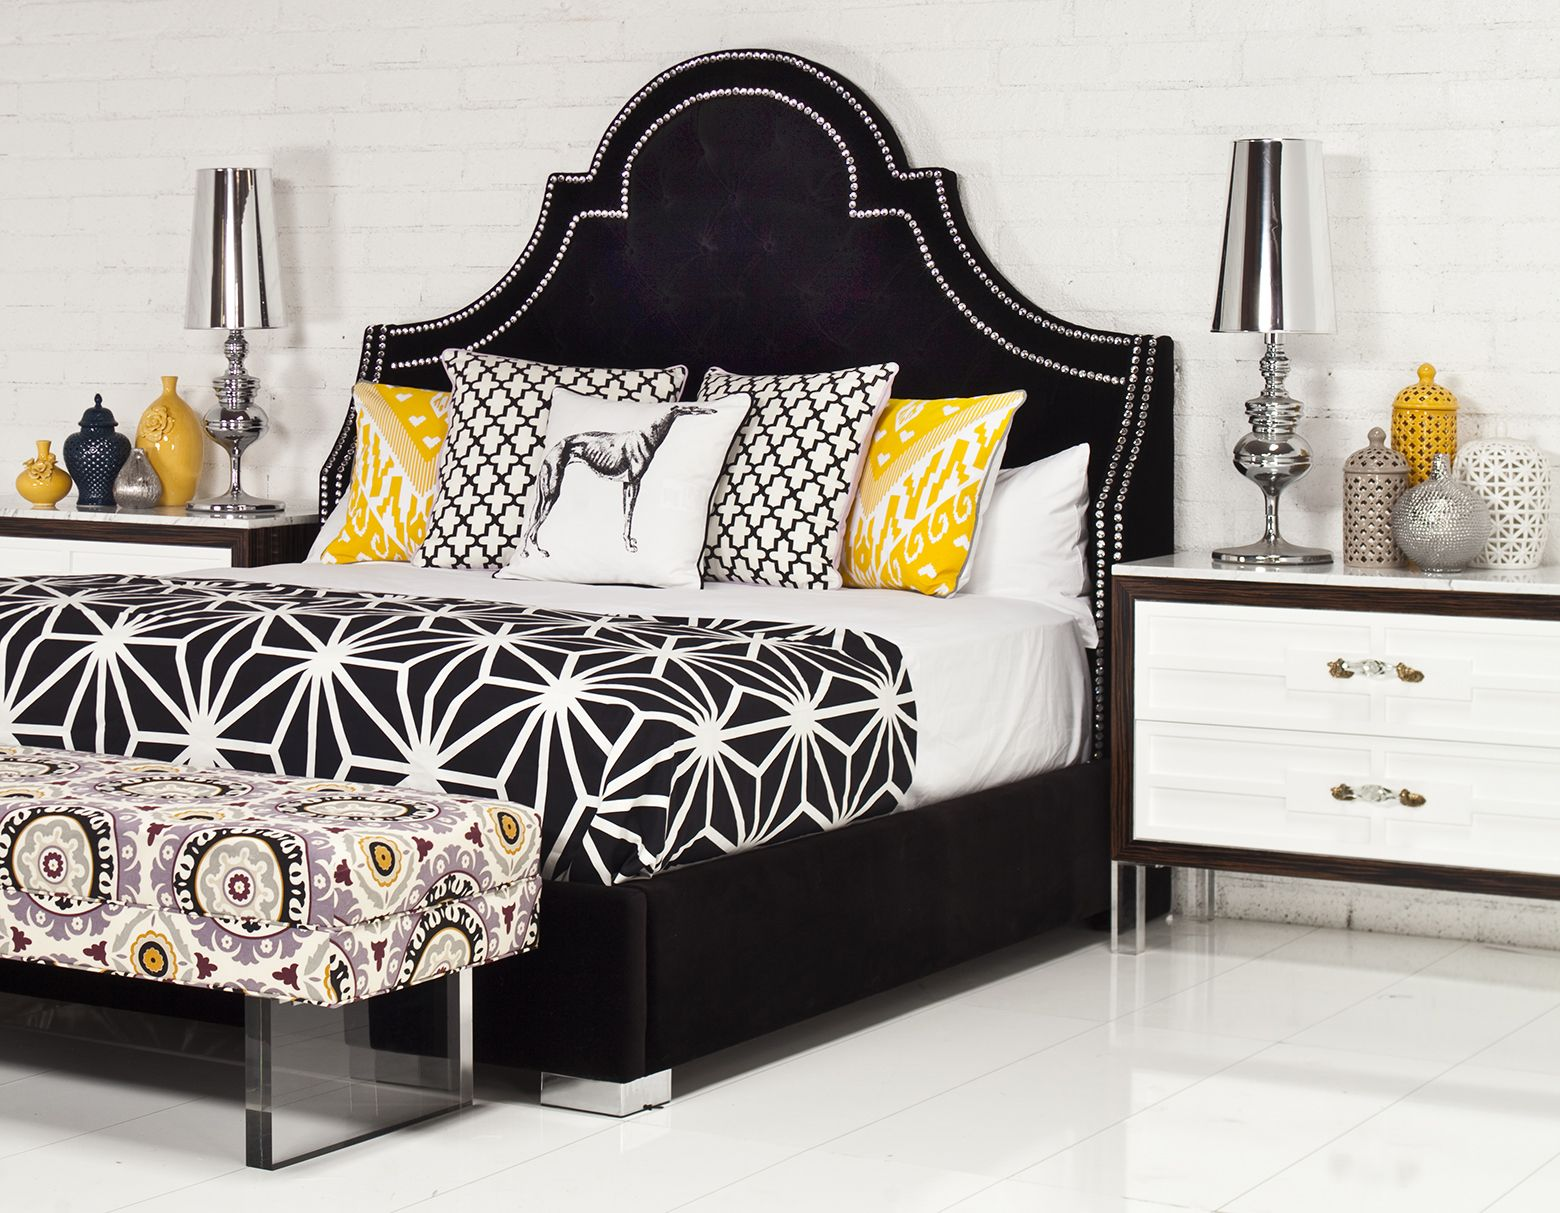 Hollywood Bed with St. Tropez Nightstands by ROOM SERVICE